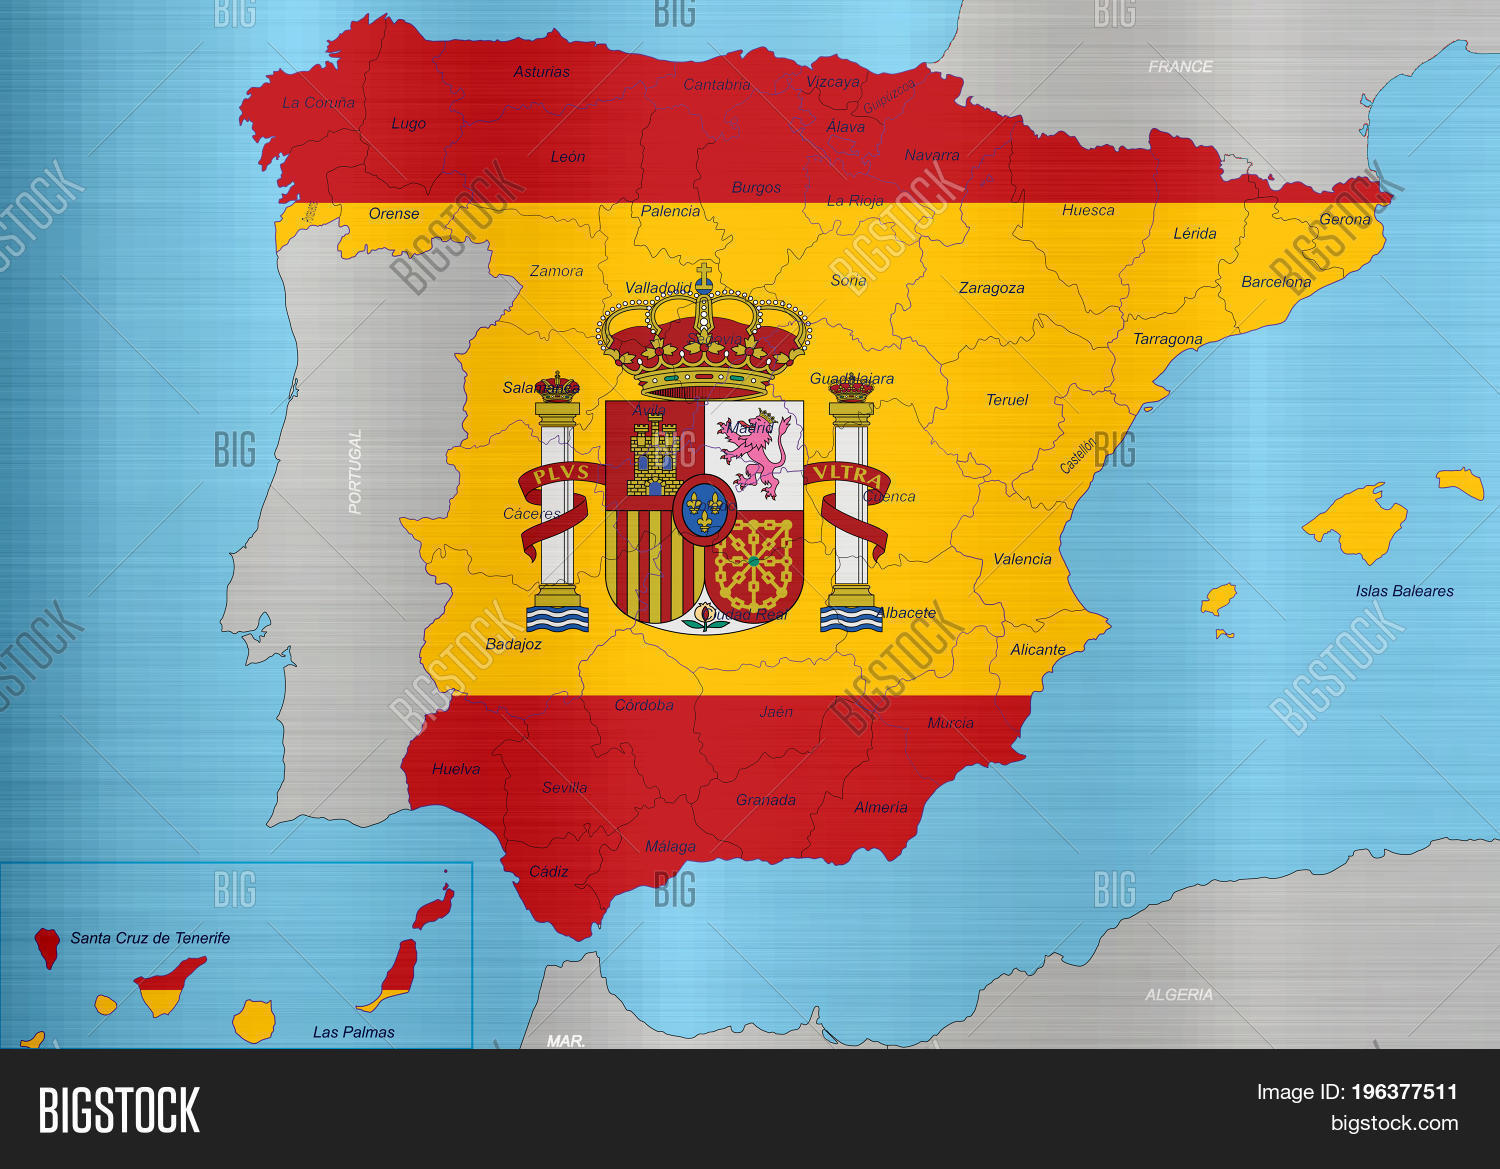 Spain Flag Map Regions Image & Photo (Free Trial) | Bigstock